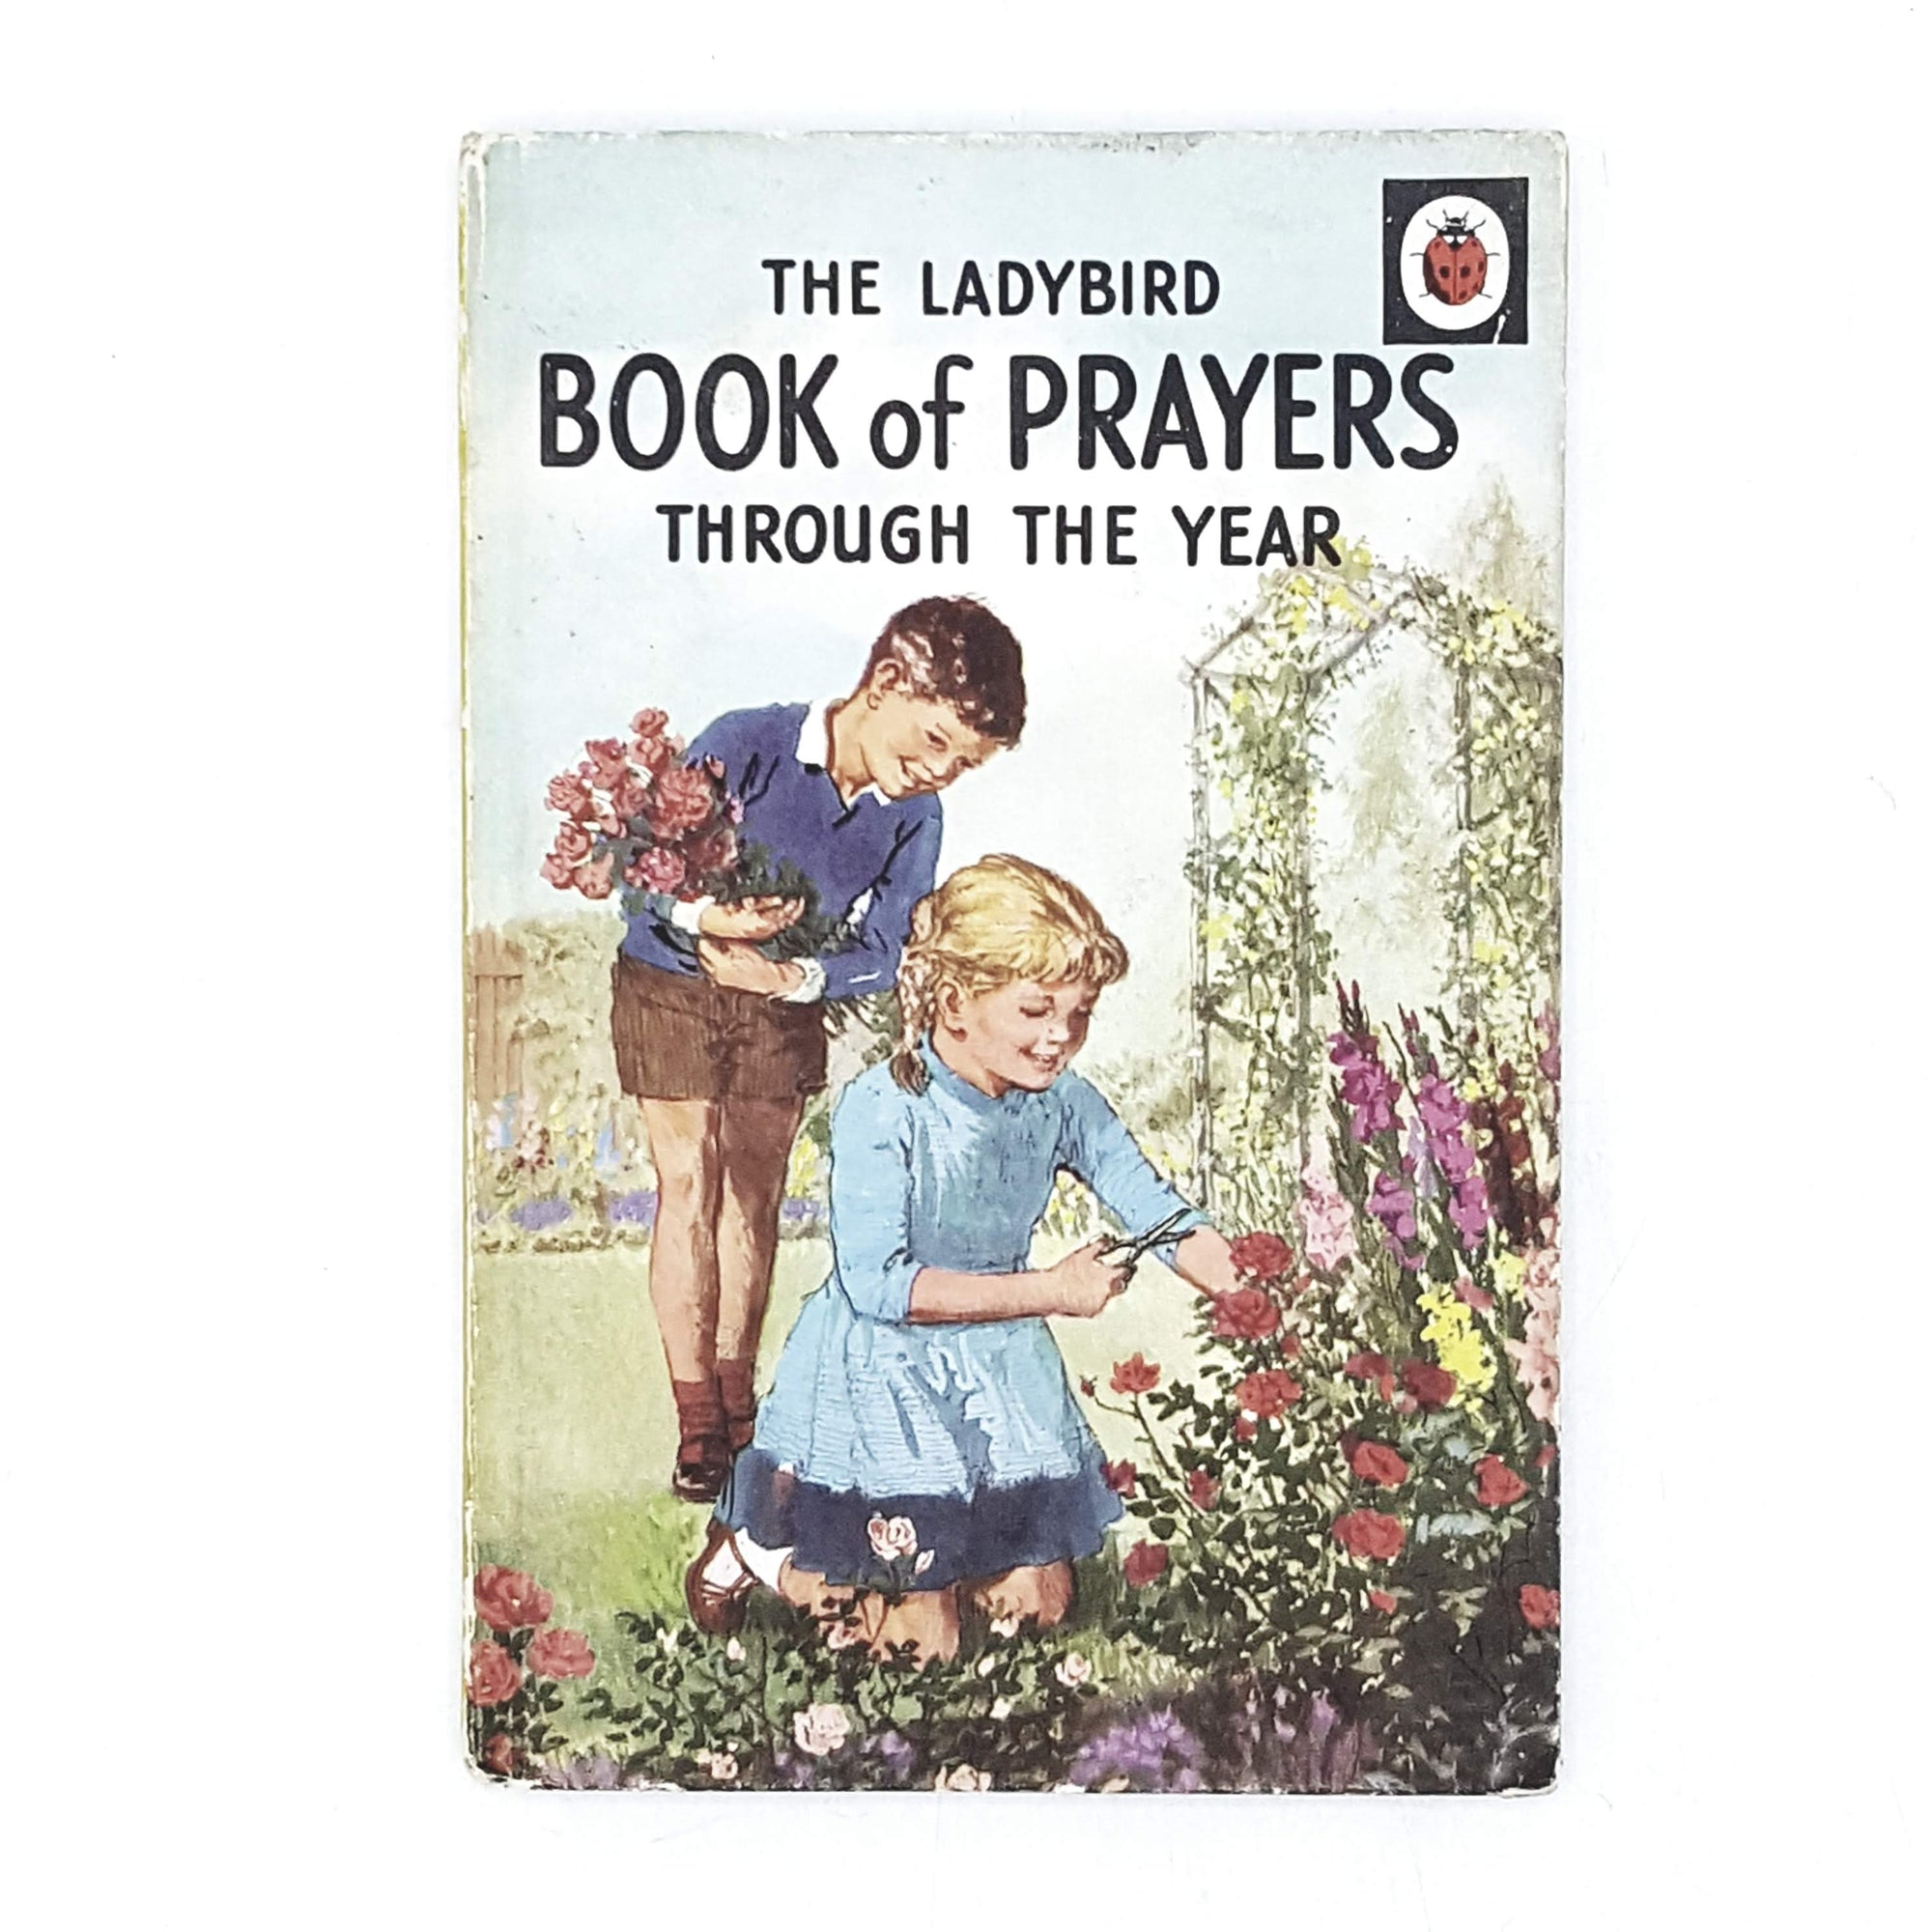 Book of Prayers by Hilda Rostron 1964